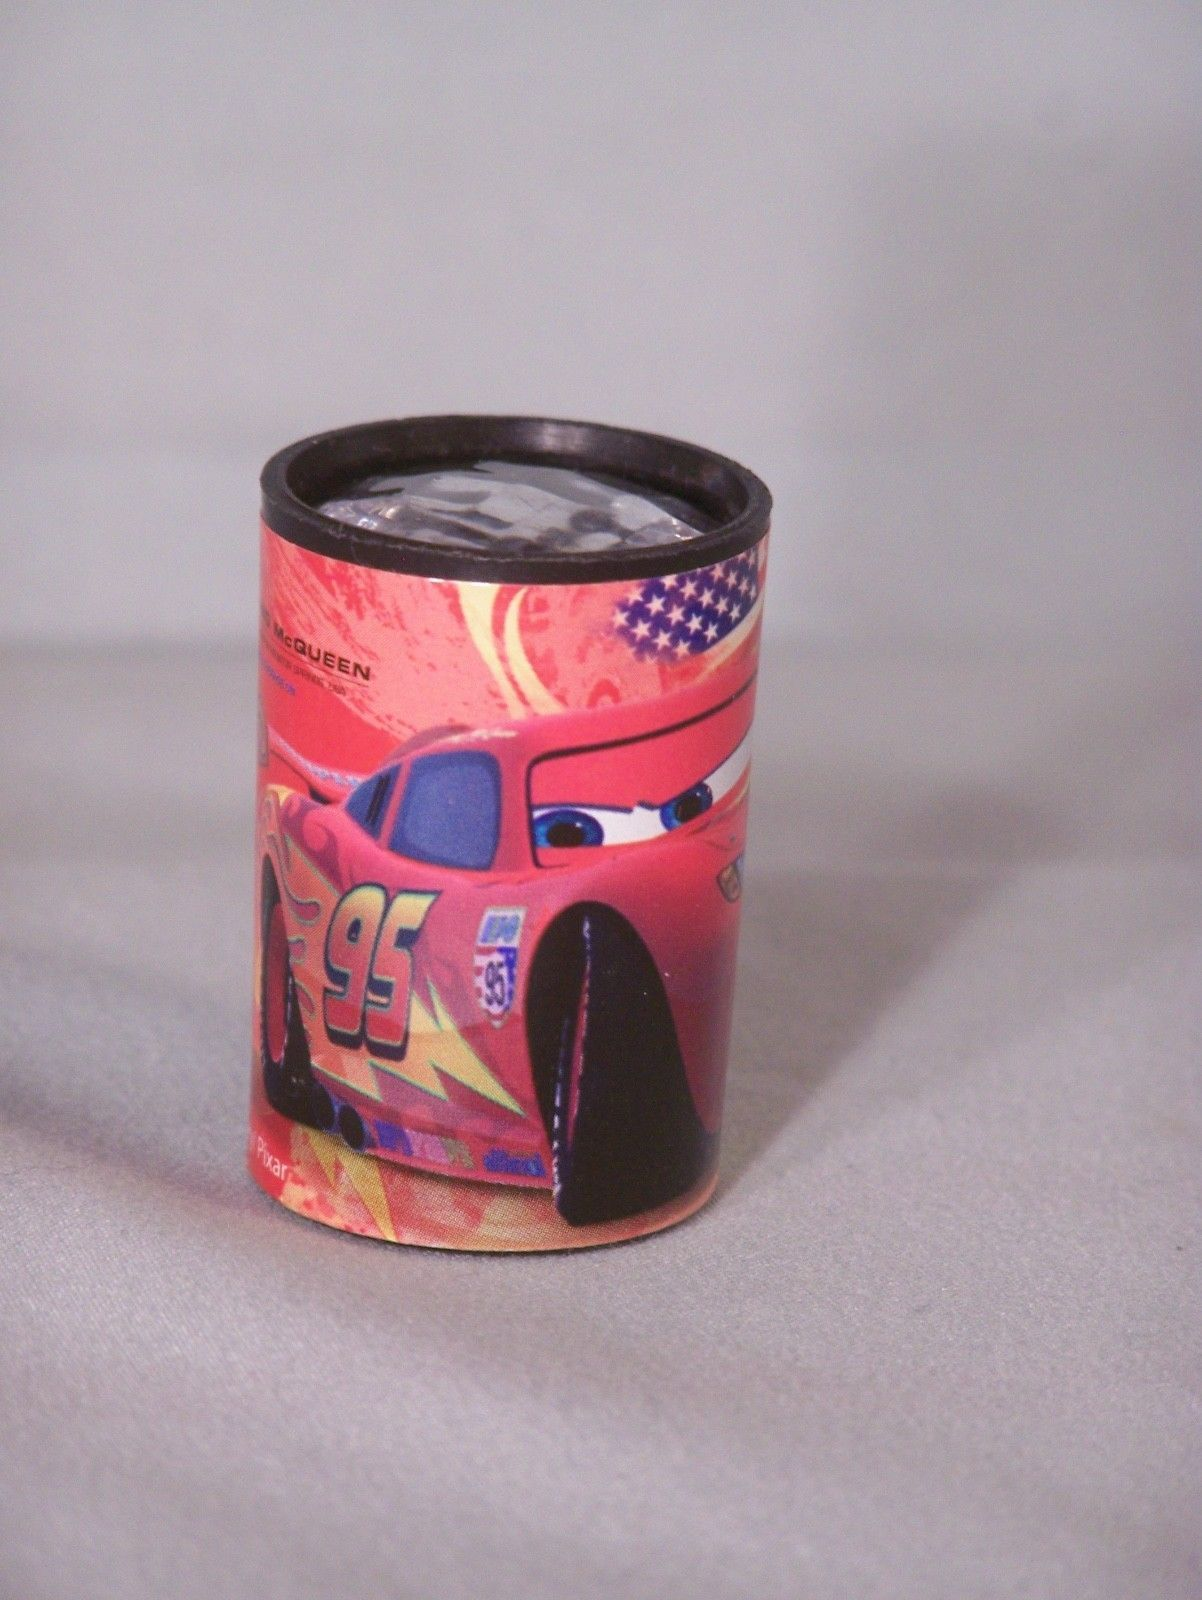 "Disney Pixar Lightning McQueen view distortion toy, approx 1.2"" long"